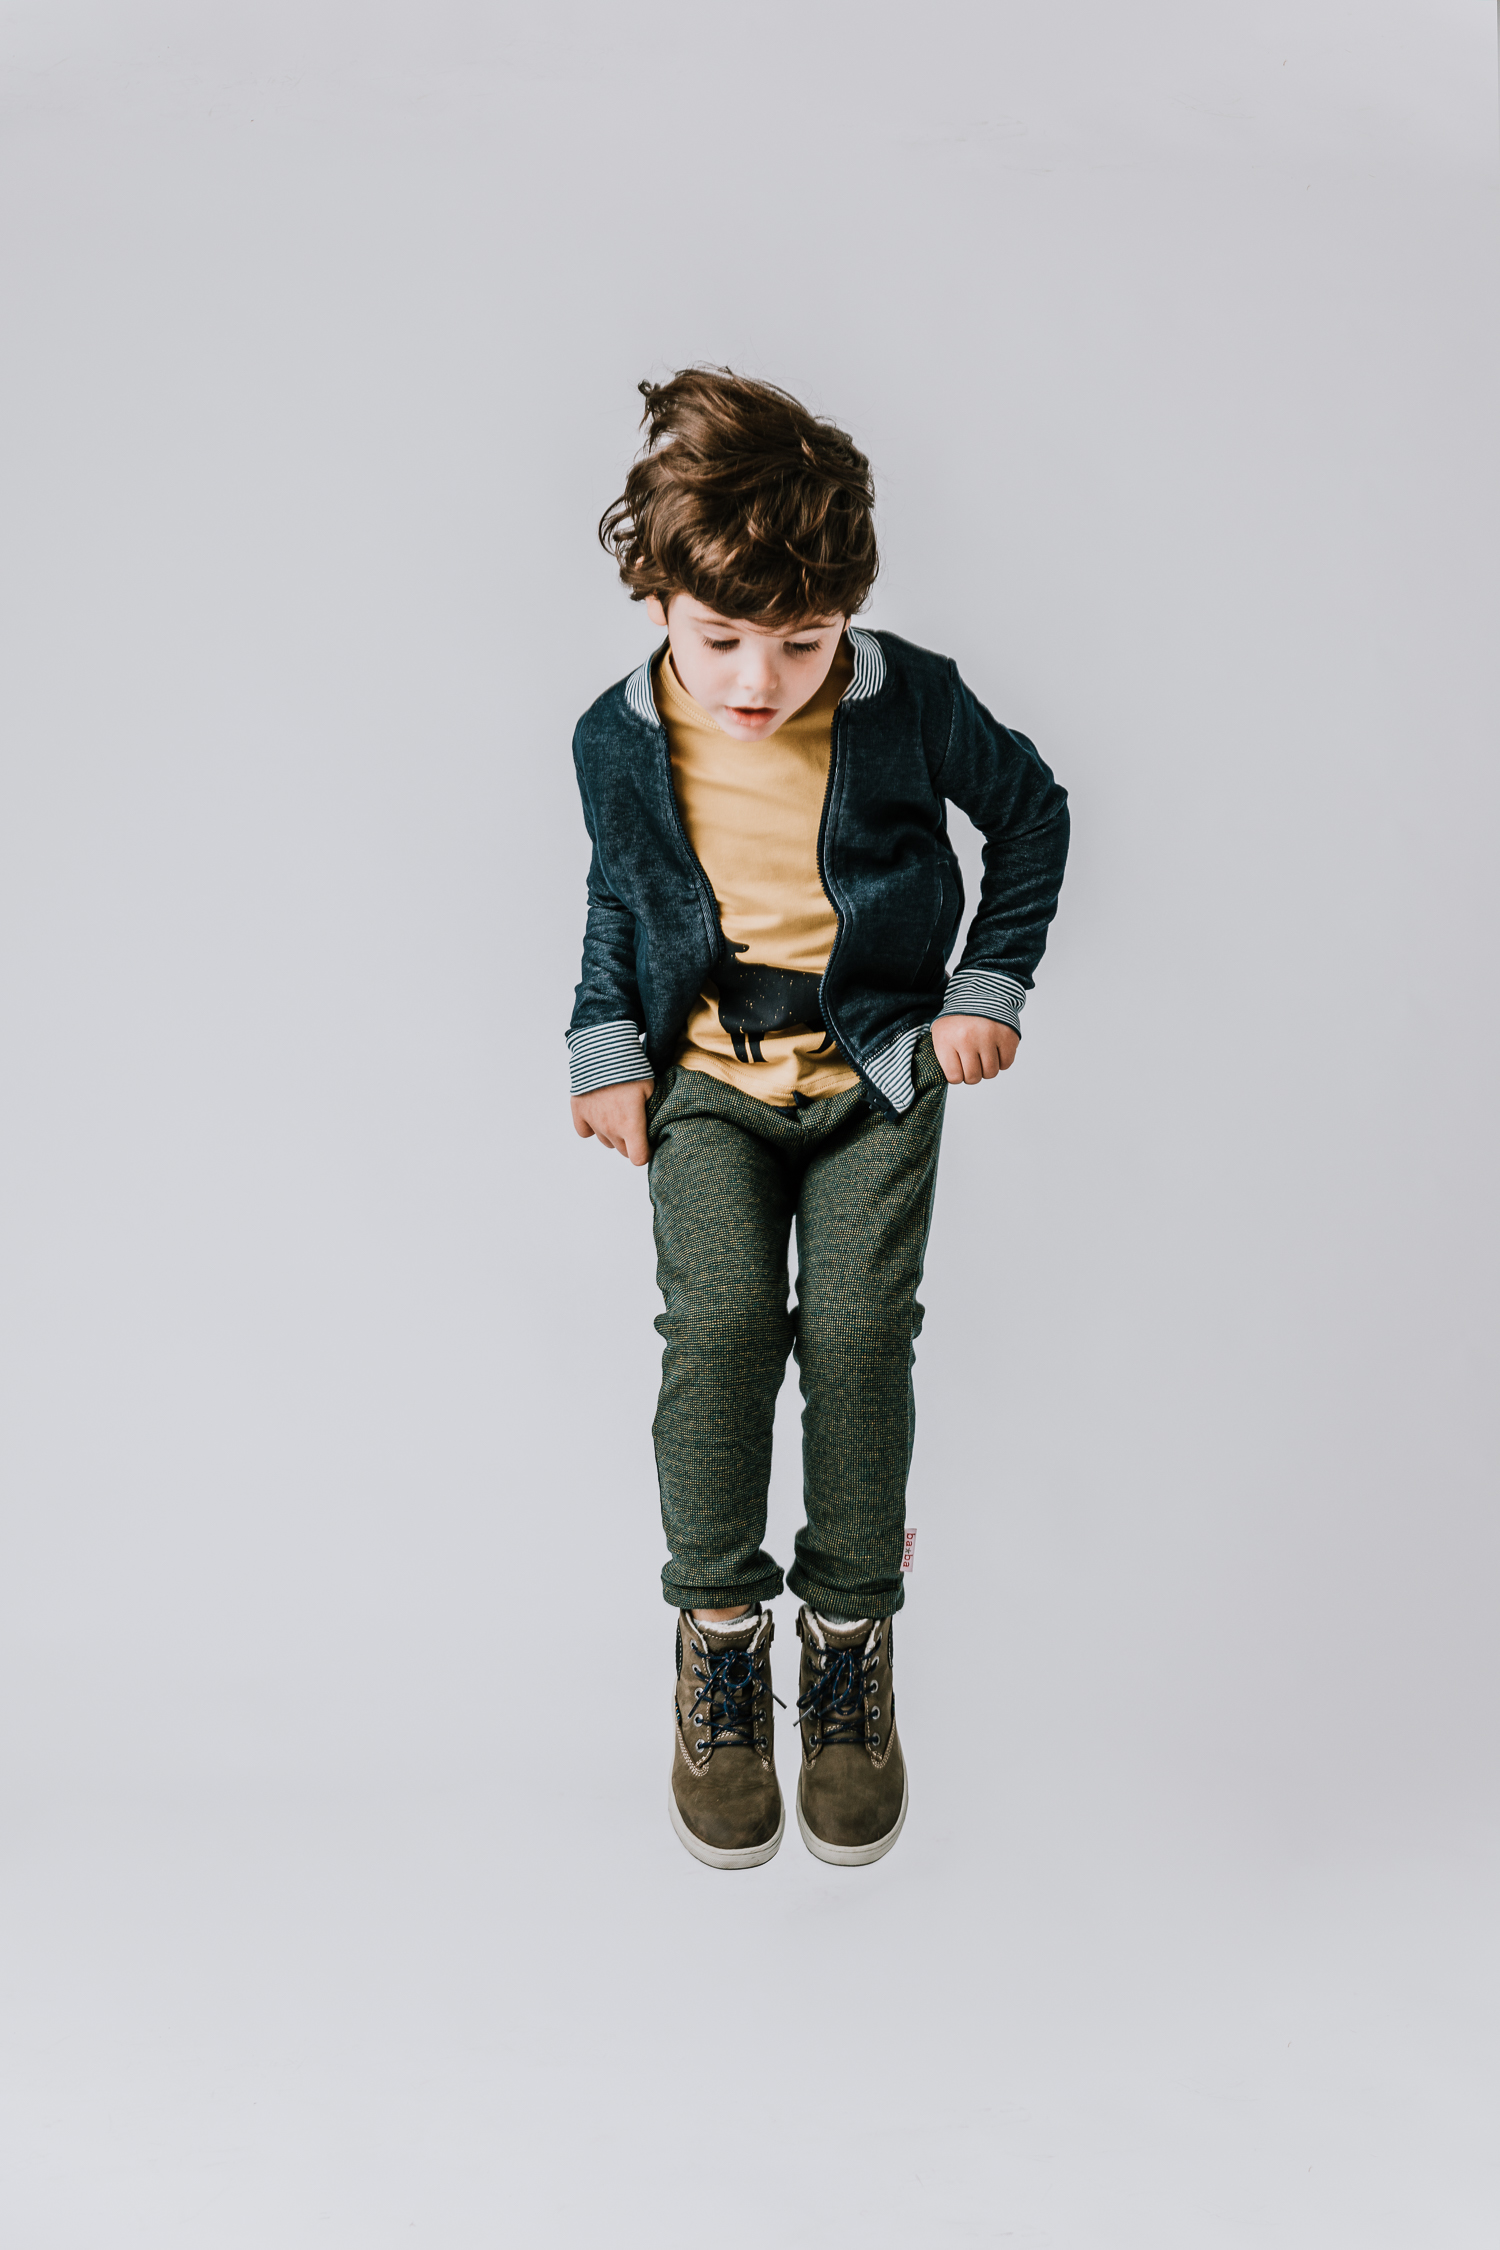 kidsfashion photographer